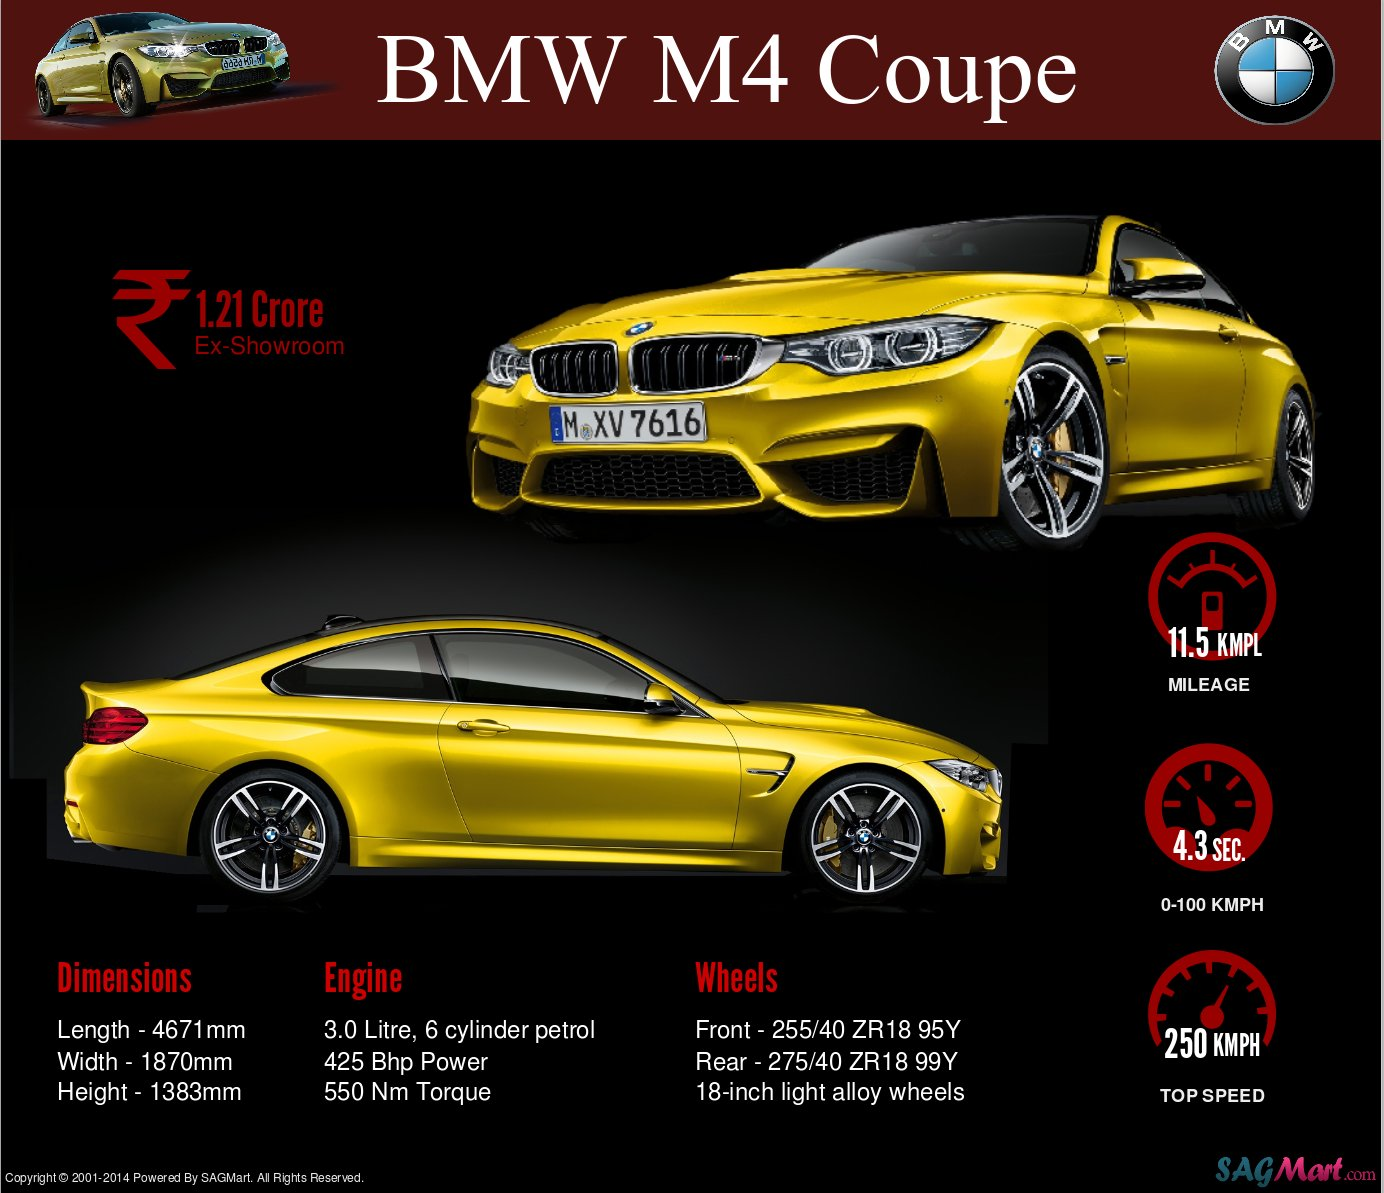 Bmwprices: BMW M4 Coupe Specifications And Price Infographic